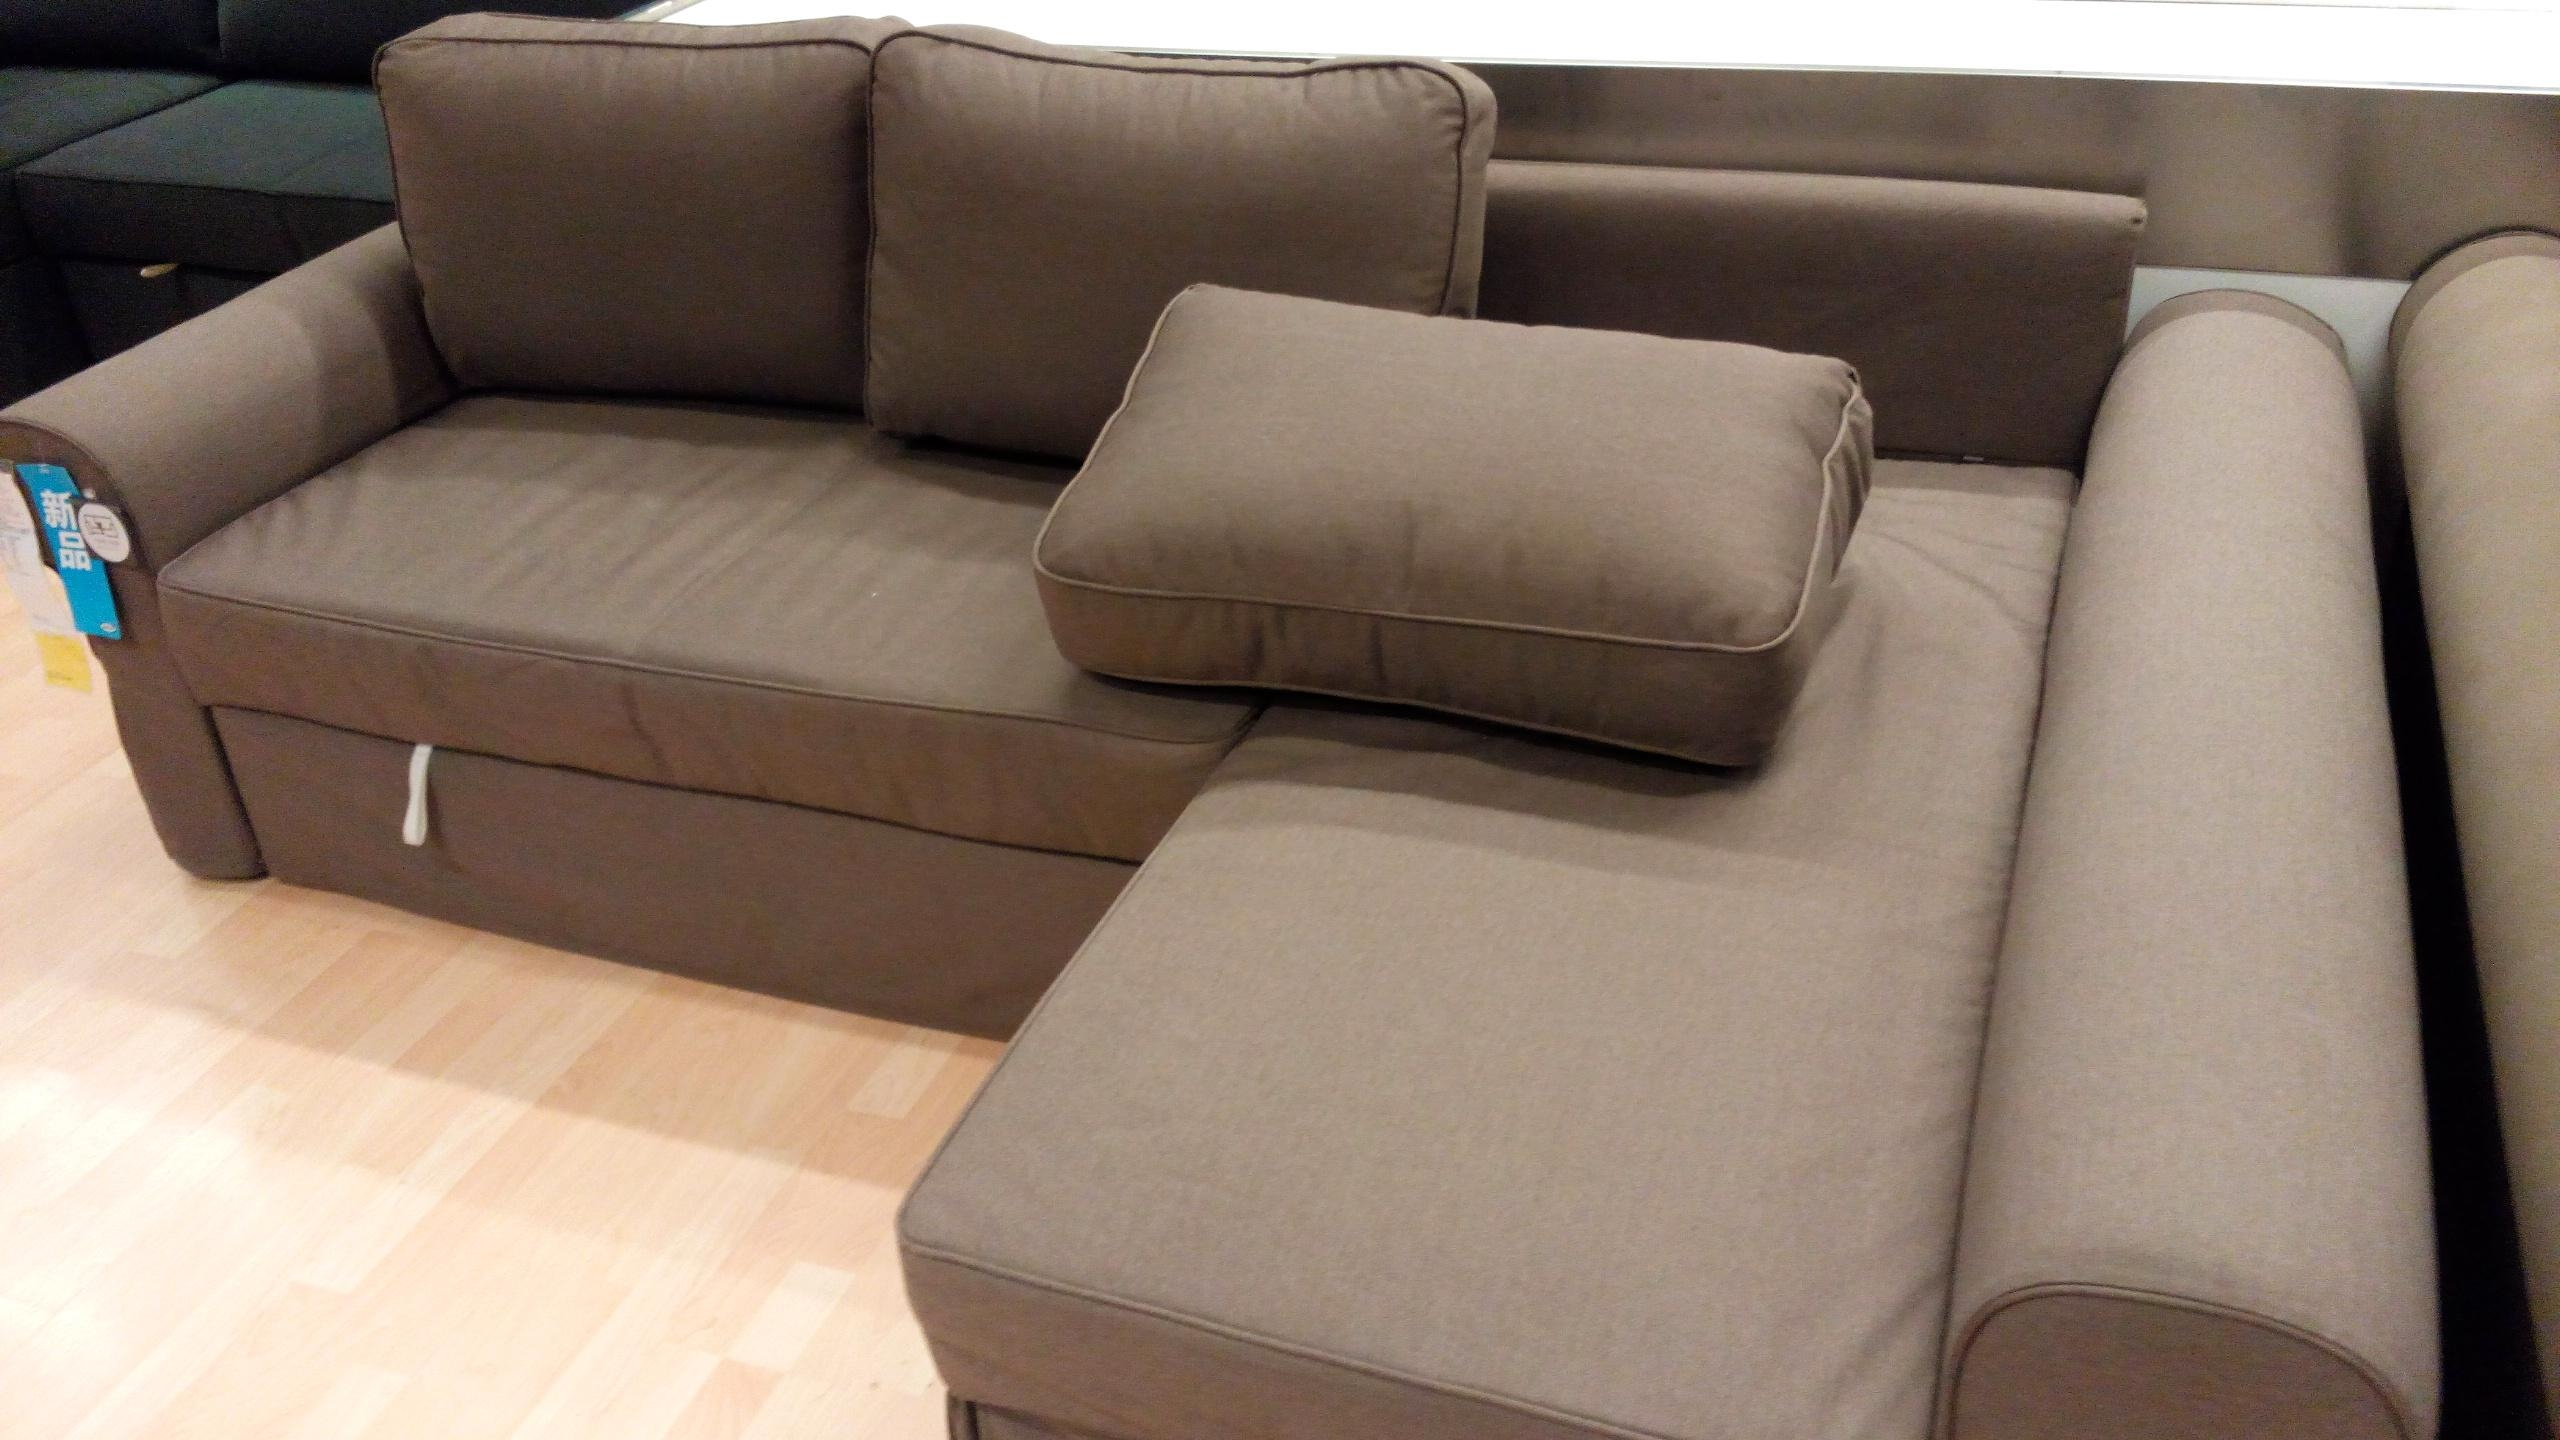 Ikea Vilasund And Backabro Review – Return Of The Sofa Bed Clones! Regarding Manstad Sofa Bed (View 6 of 20)